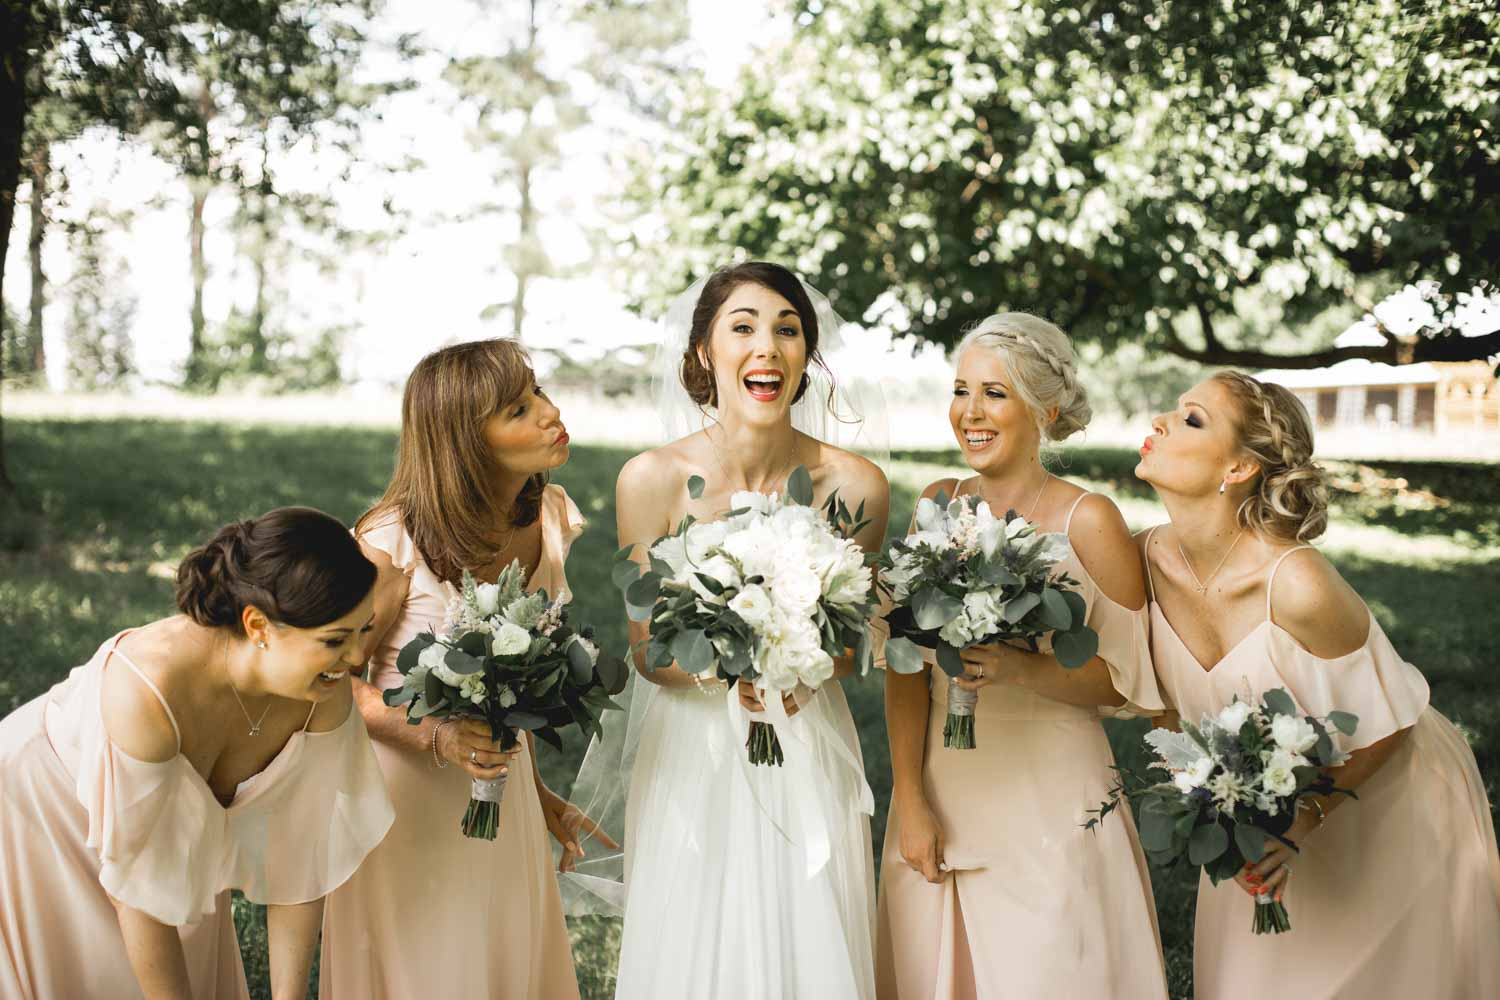 bridal-party-laughing-image.jpg